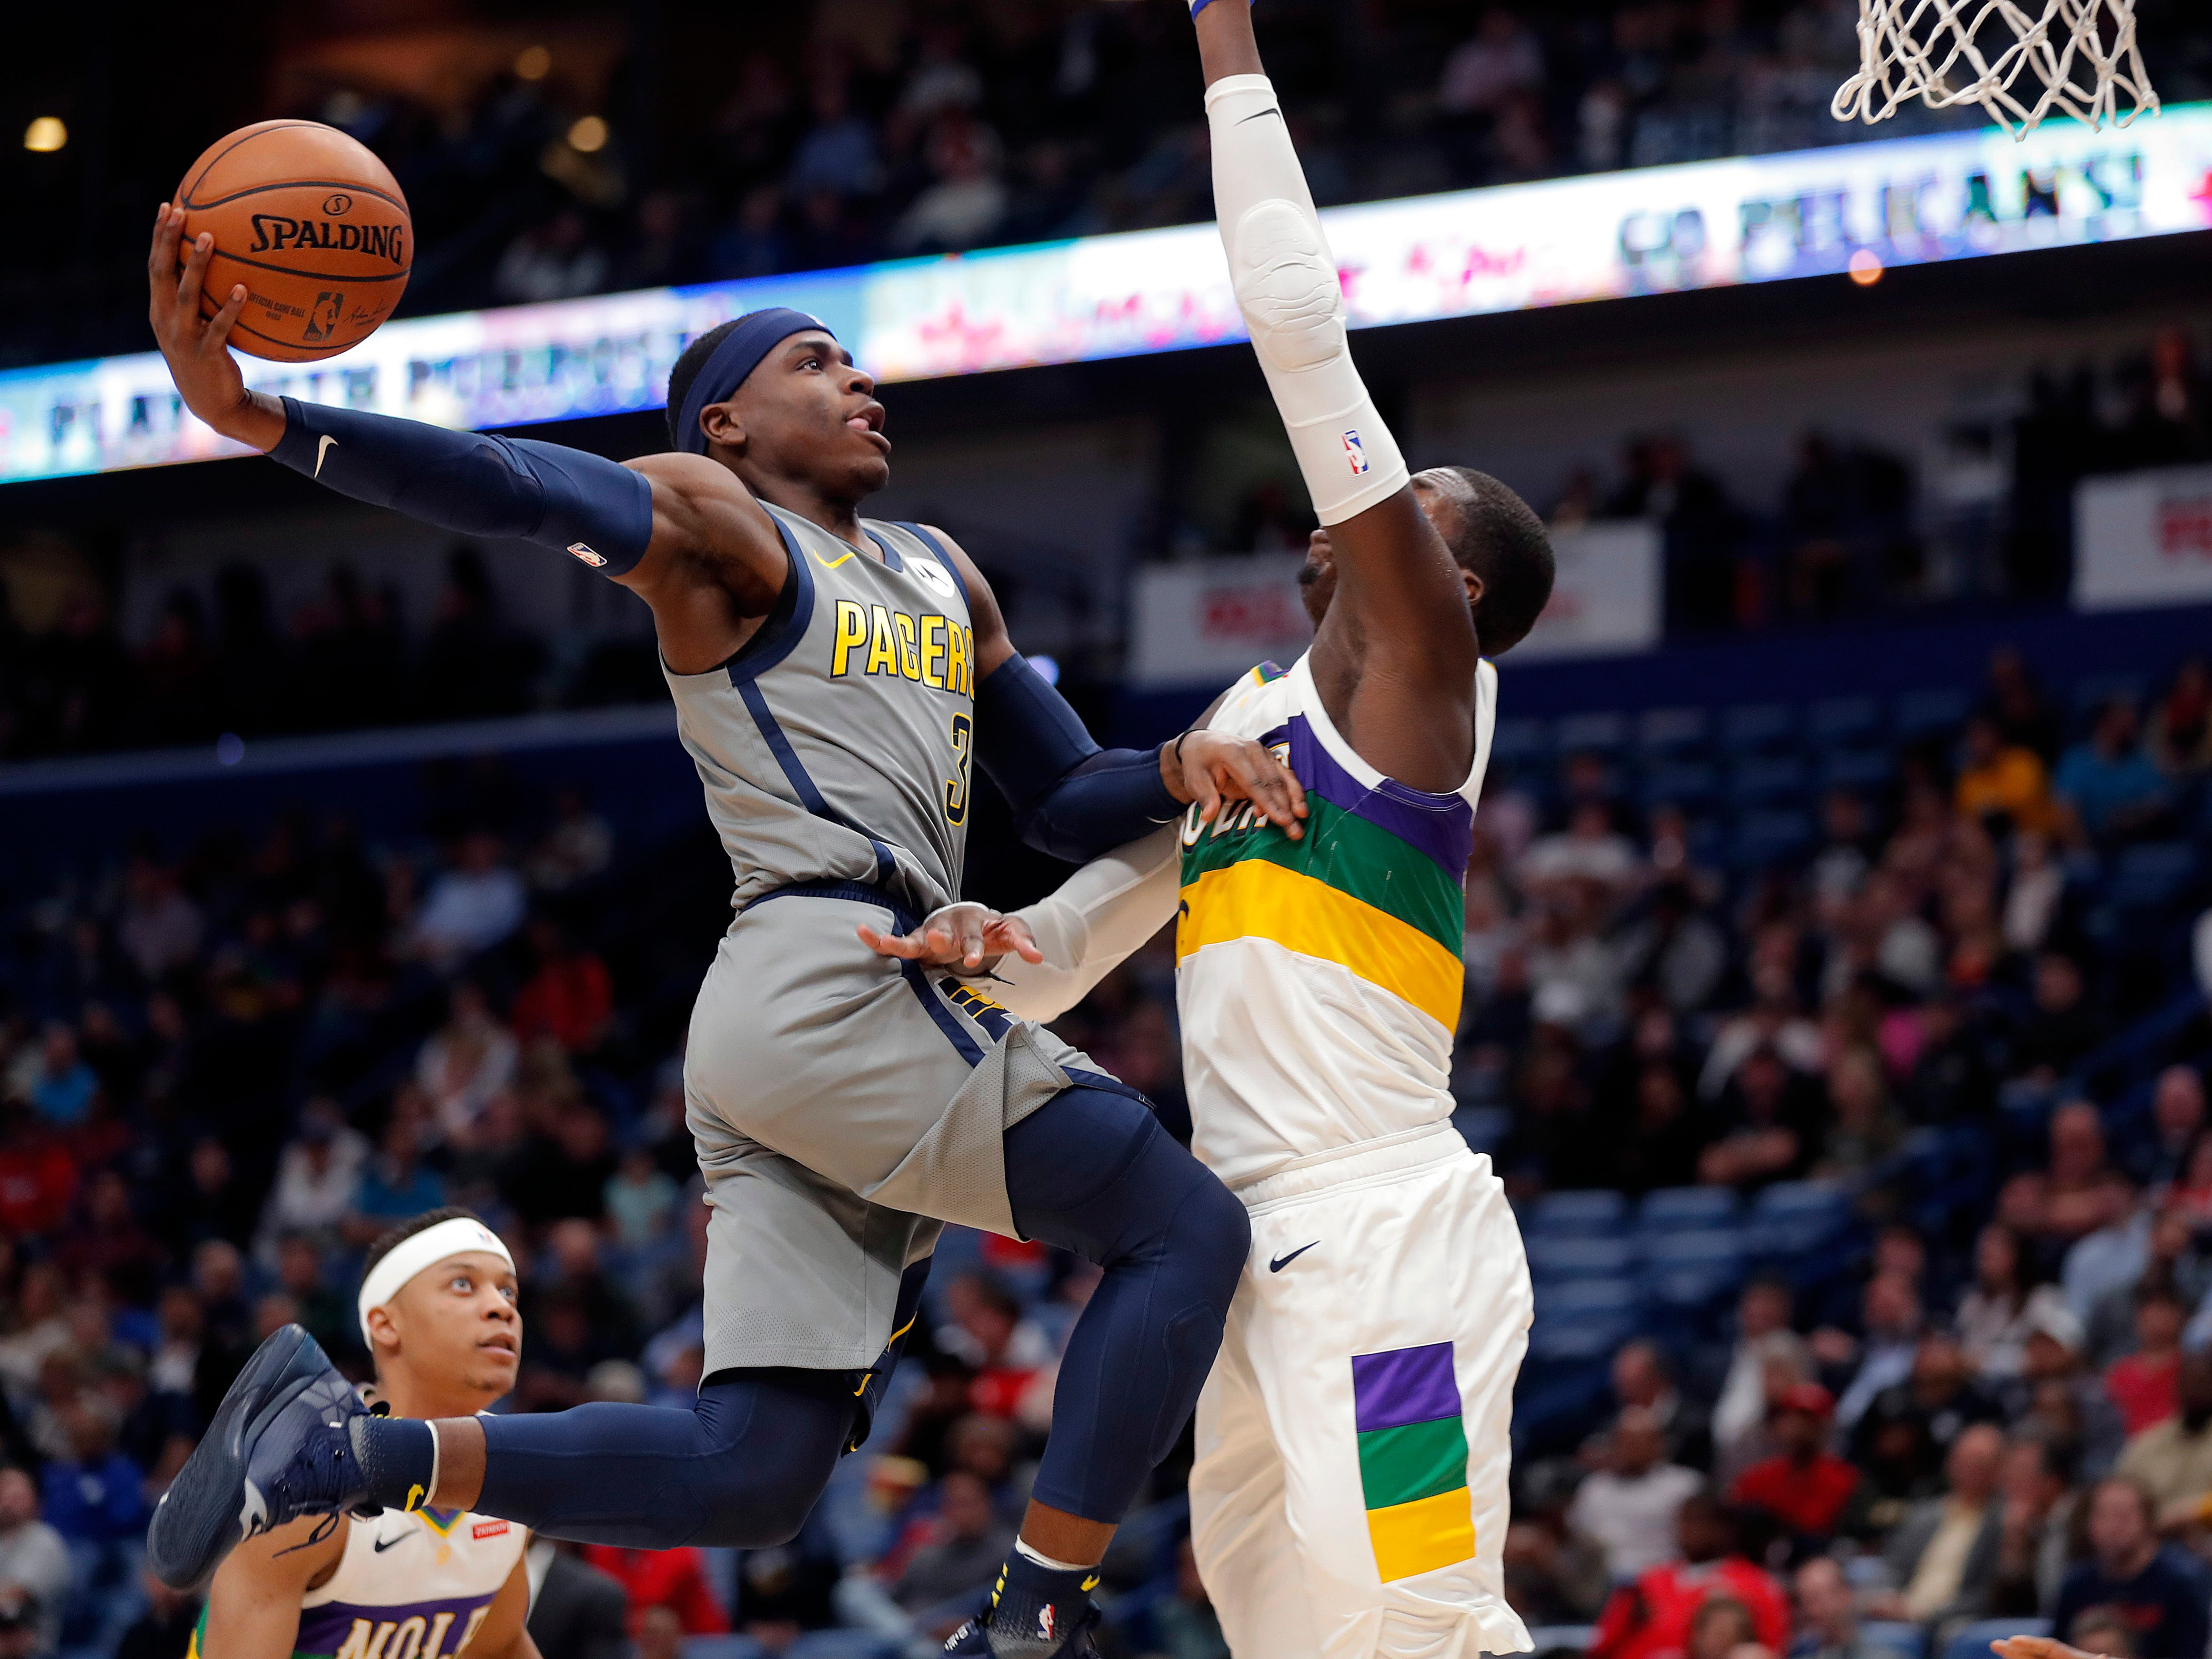 Indiana Pacers guard Aaron Holiday (3) goes to the basket against New Orleans Pelicans forward Cheick Diallo in the first half of an NBA basketball game in New Orleans, Monday, Feb. 4, 2019.